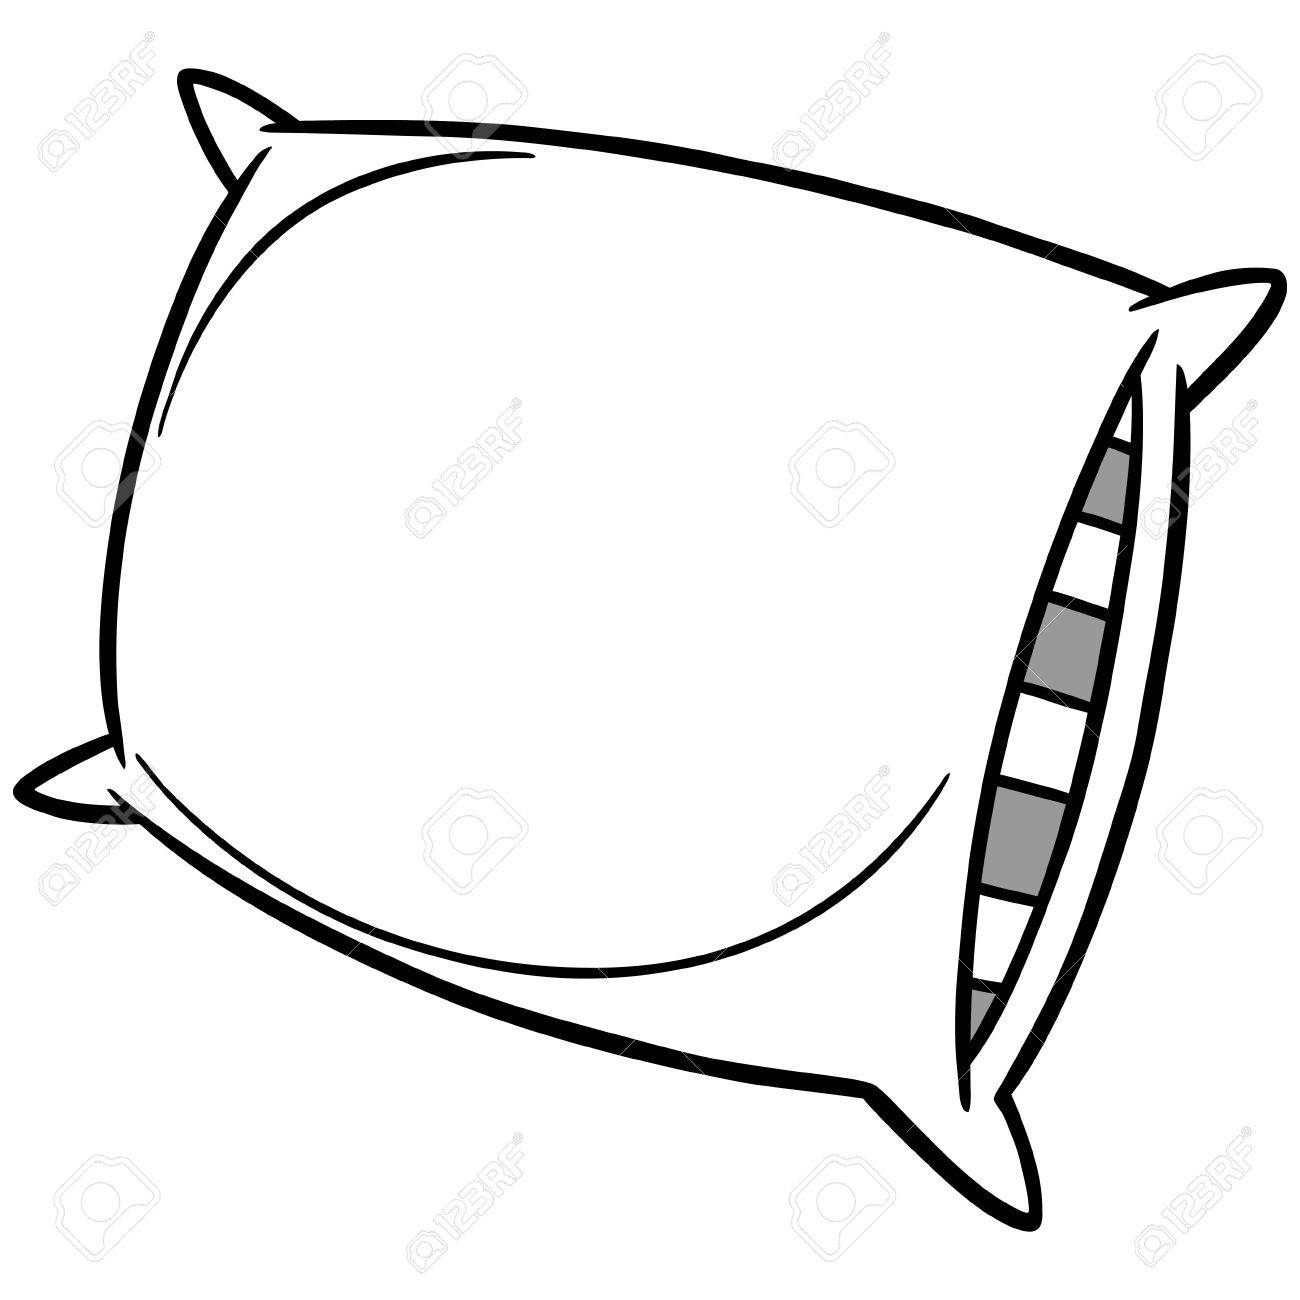 pillow party illustration royalty free cliparts vectors and stock illustration image 71730159 pillow party illustration